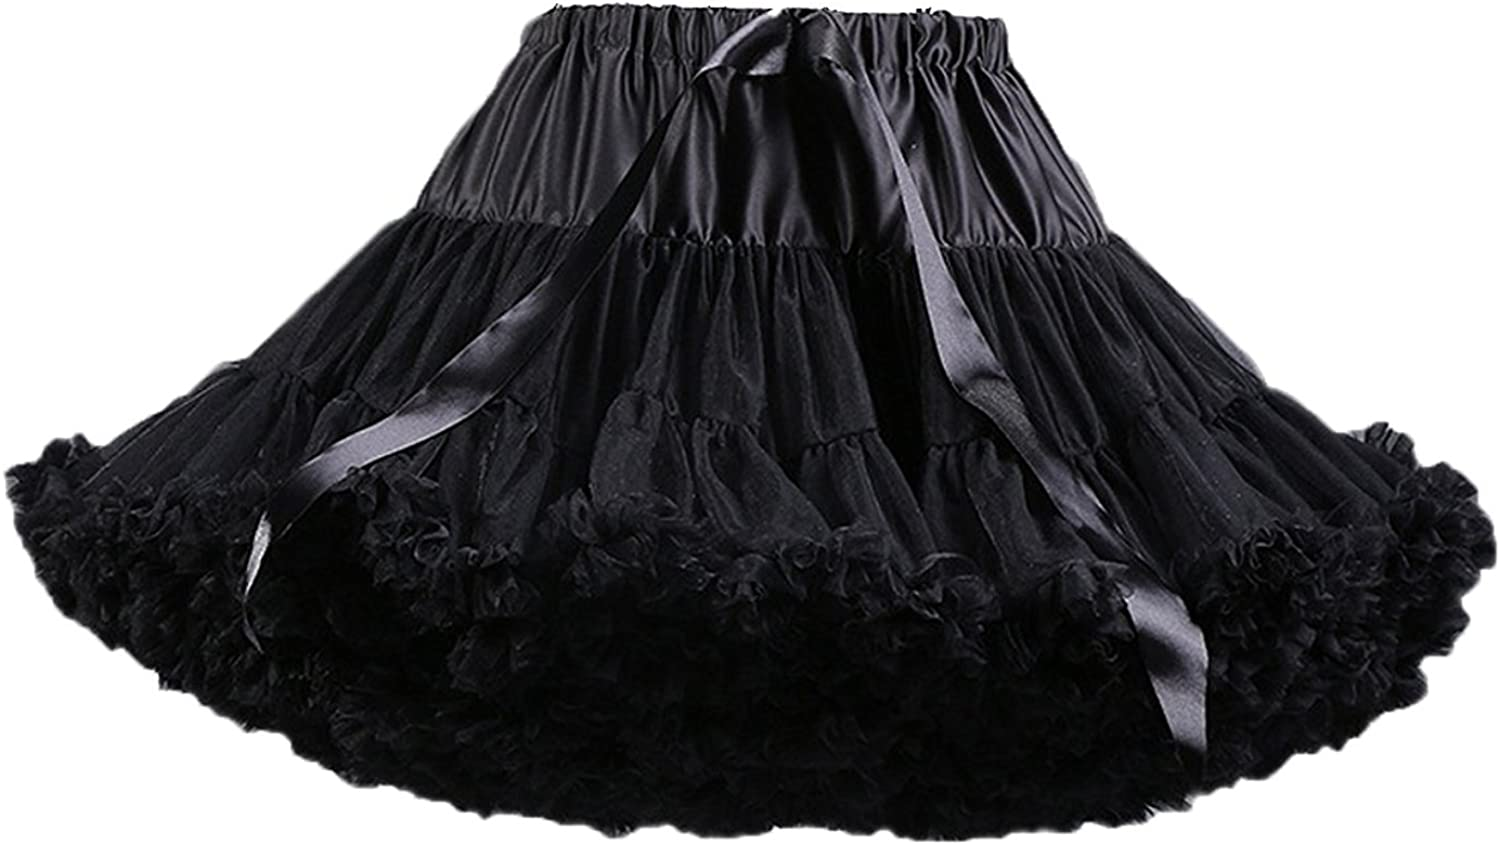 Radtengle Womens 50s Ruffled Petticoat Tutu Skirts Multi-Layered Tulle Pleated Ballet Dance Costume Accessories